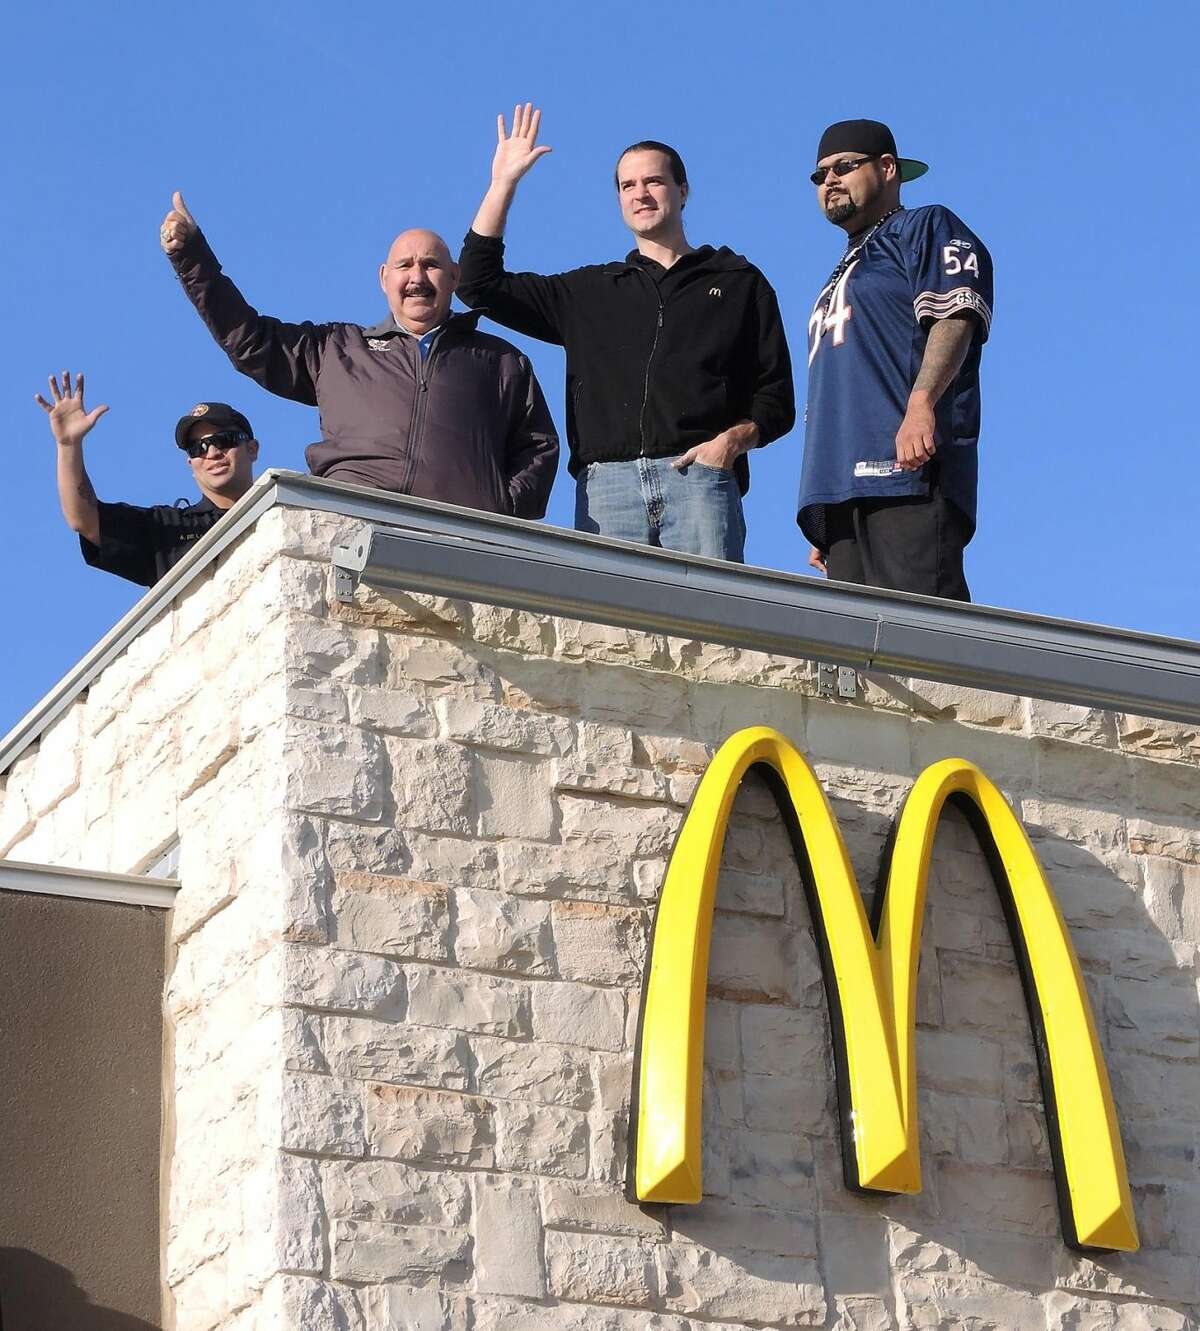 'Up on the rooftop reindeer pause' Mayor Raul Salinas, second from left, is joined by firefighter Alfredo de la Cruz, McDonald's Mike Marasco and Guerra Communications DJ Pete